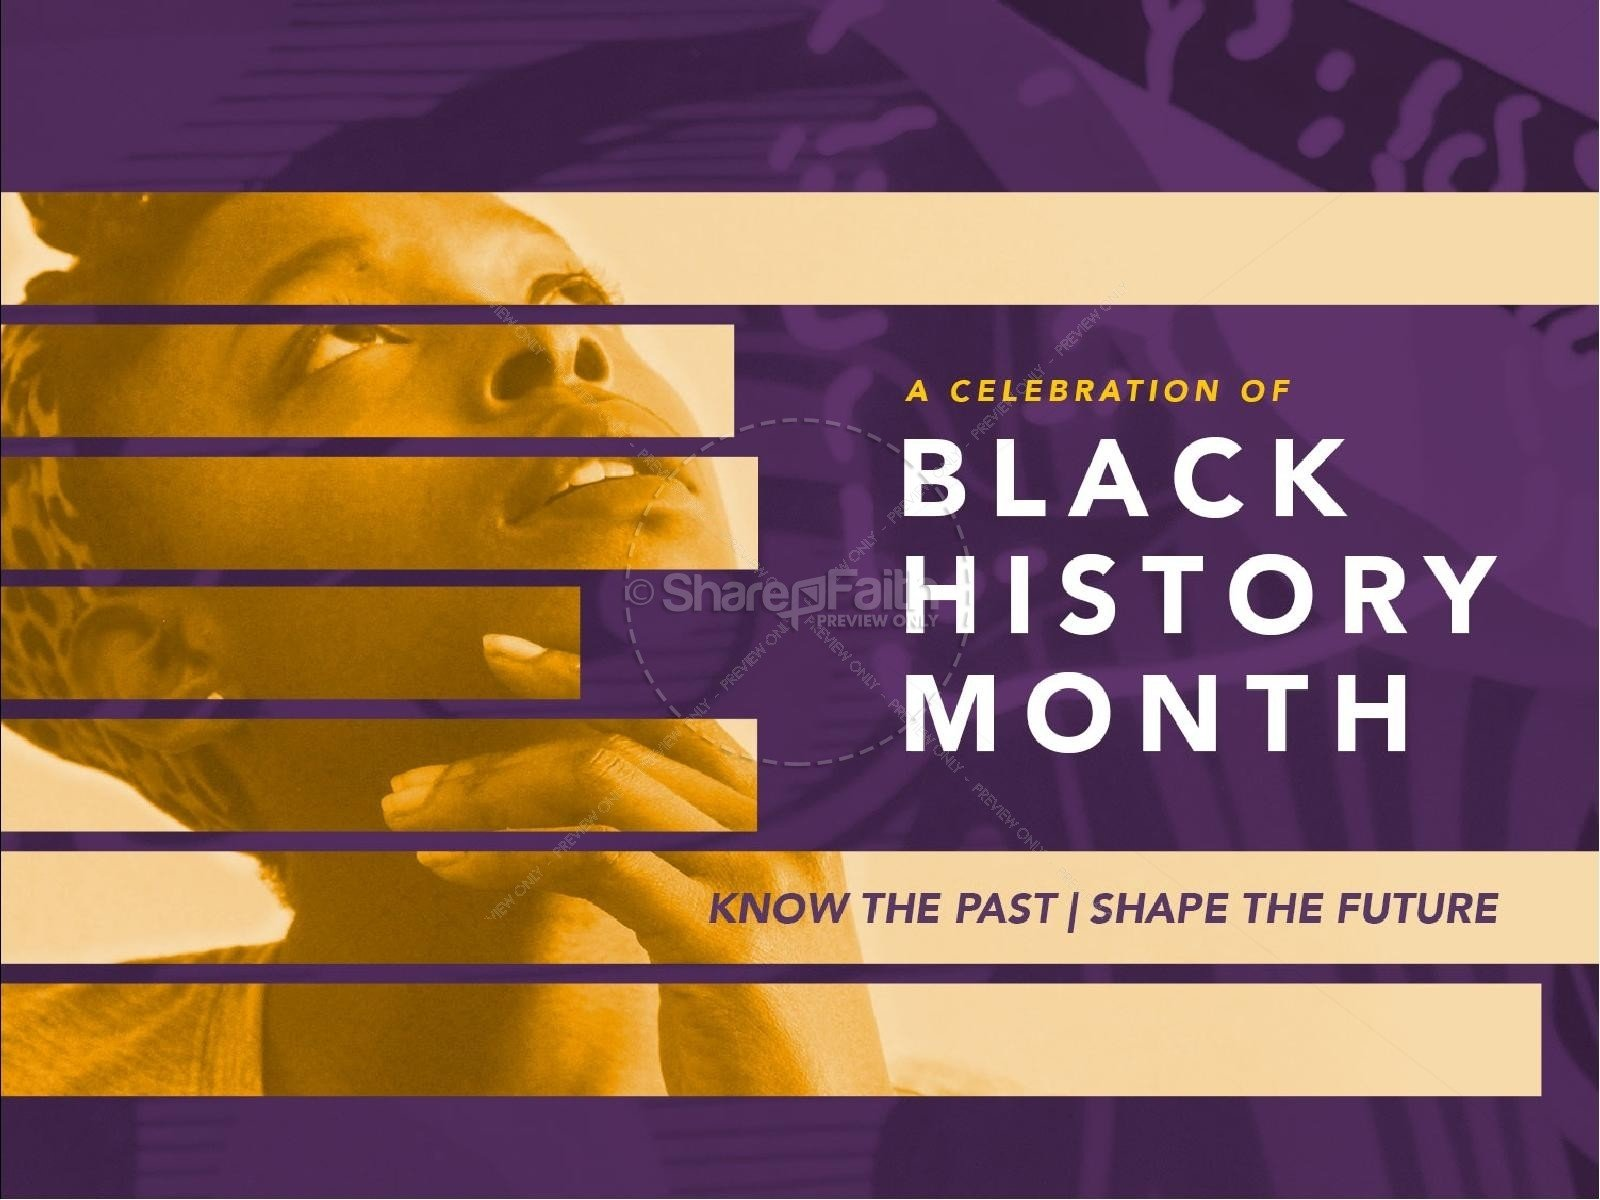 10 Most Popular Black History Ideas For Church black history month church countdown timer church countdown timers 2021